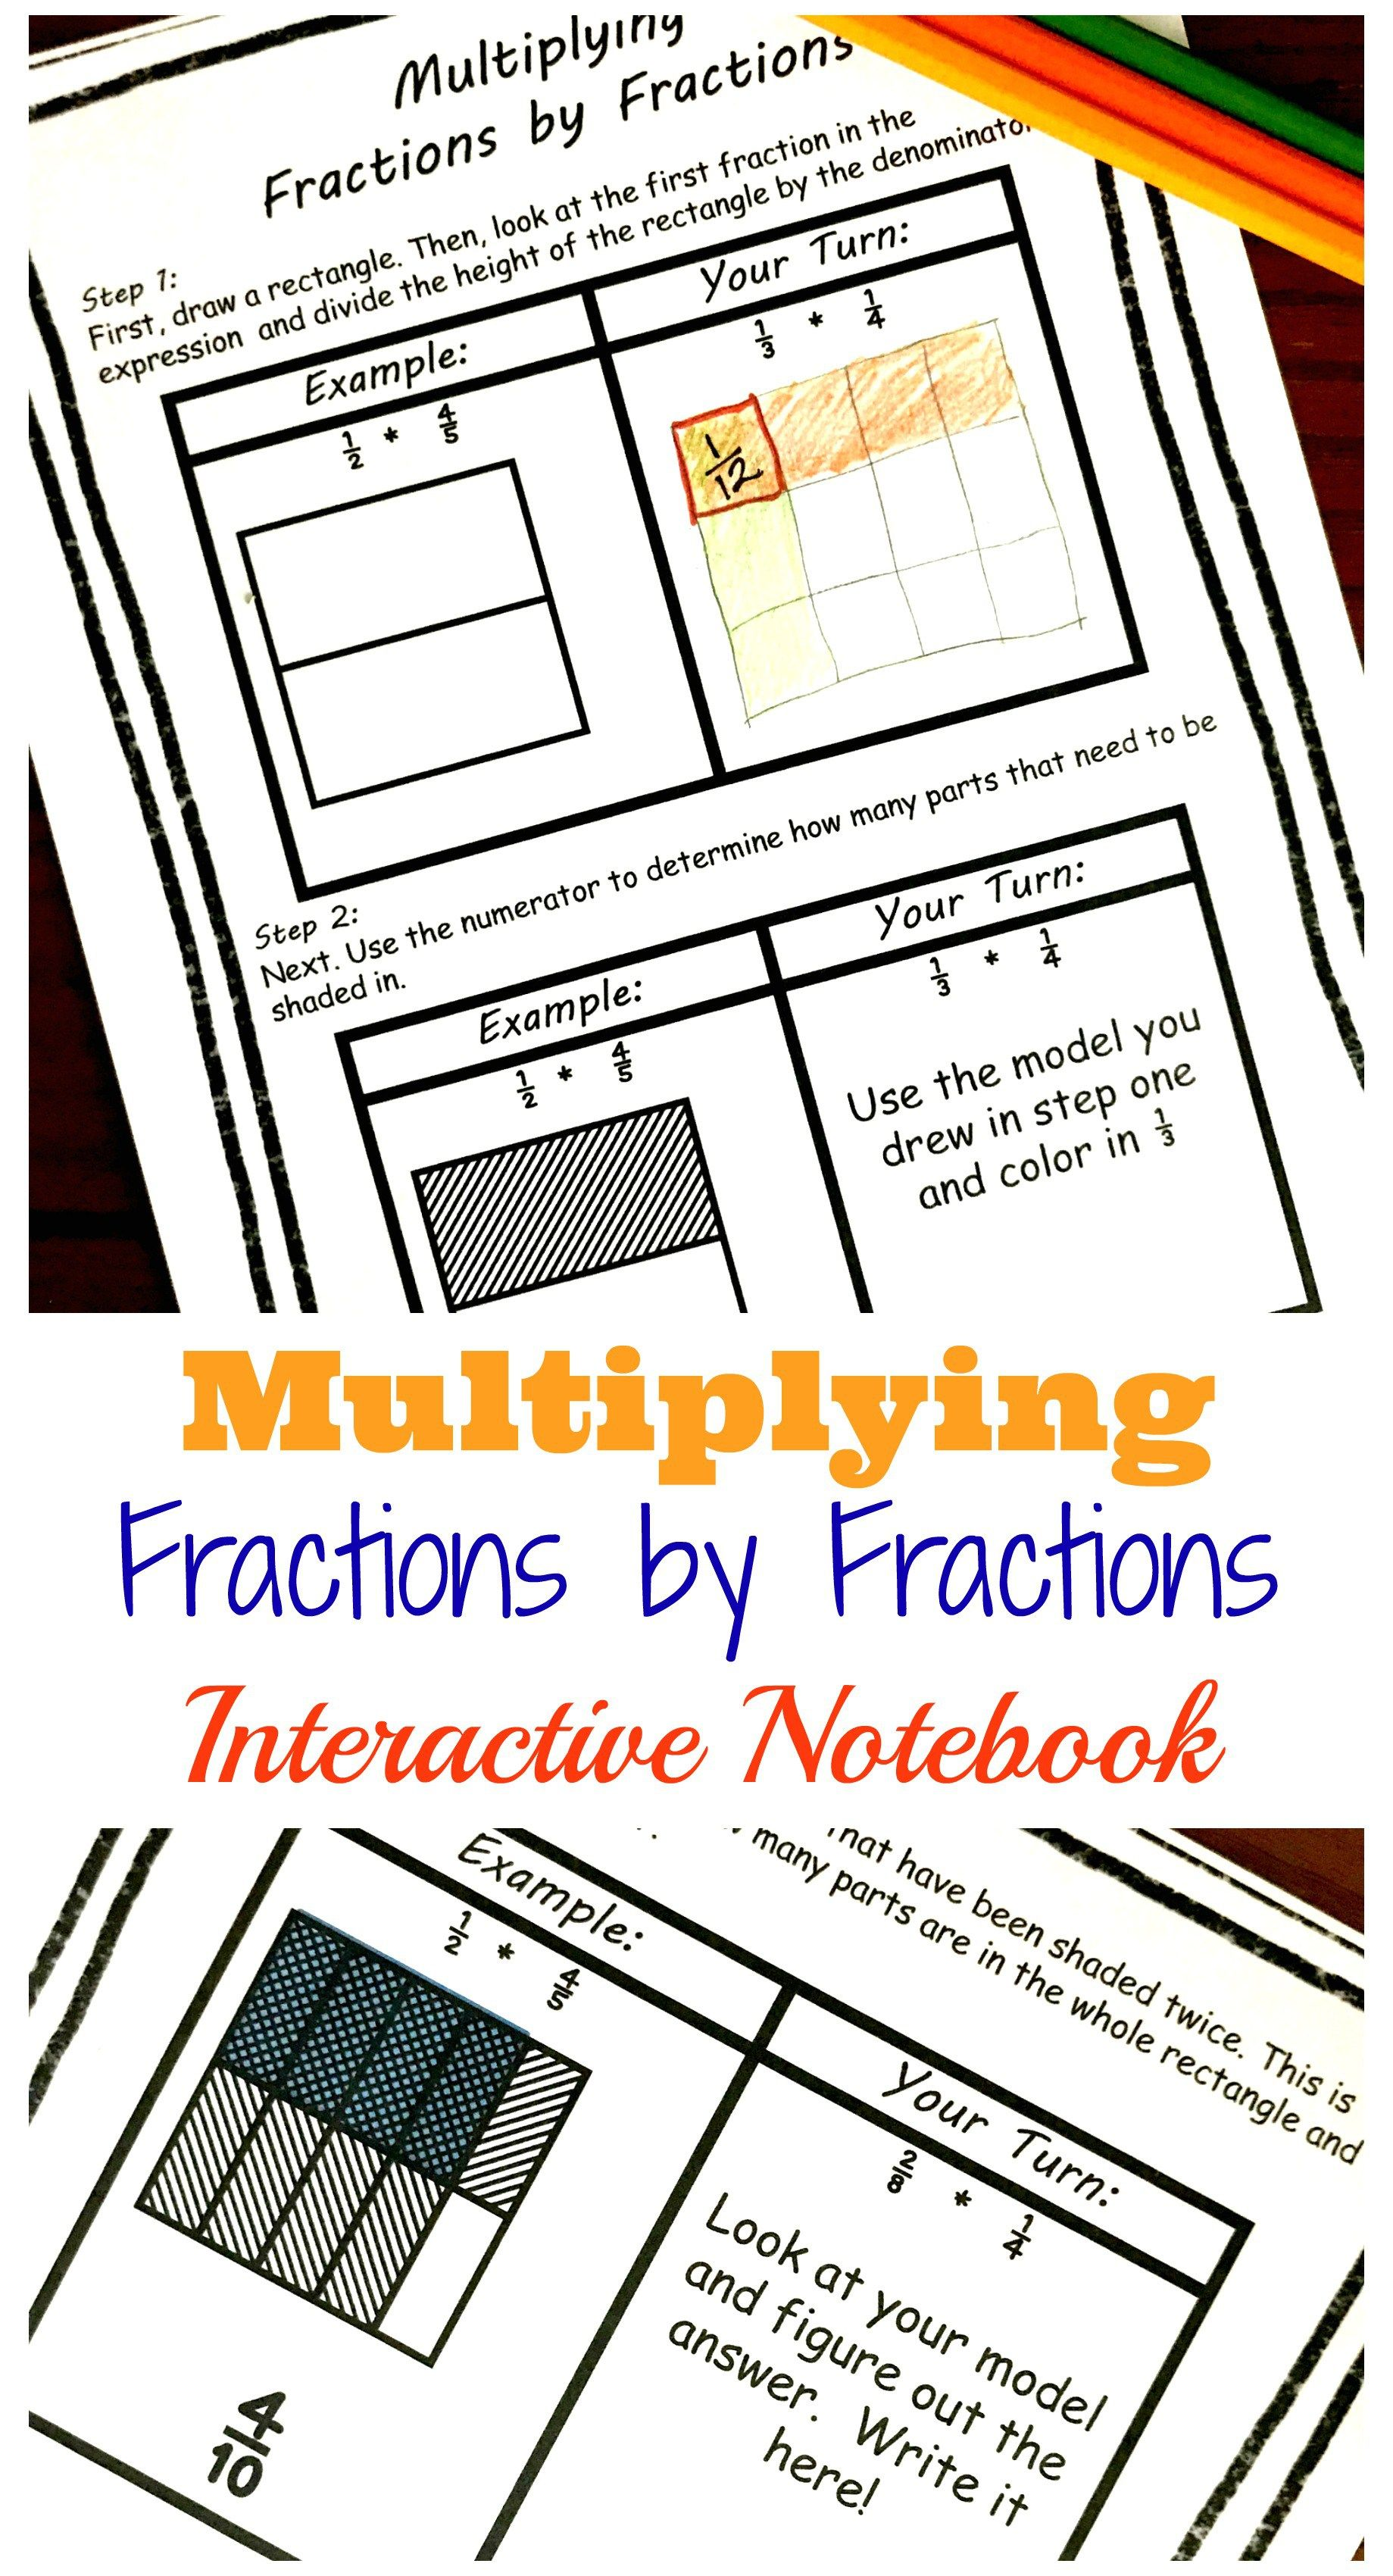 Step by Step Instructions for Multiplying Fractions with Models ...